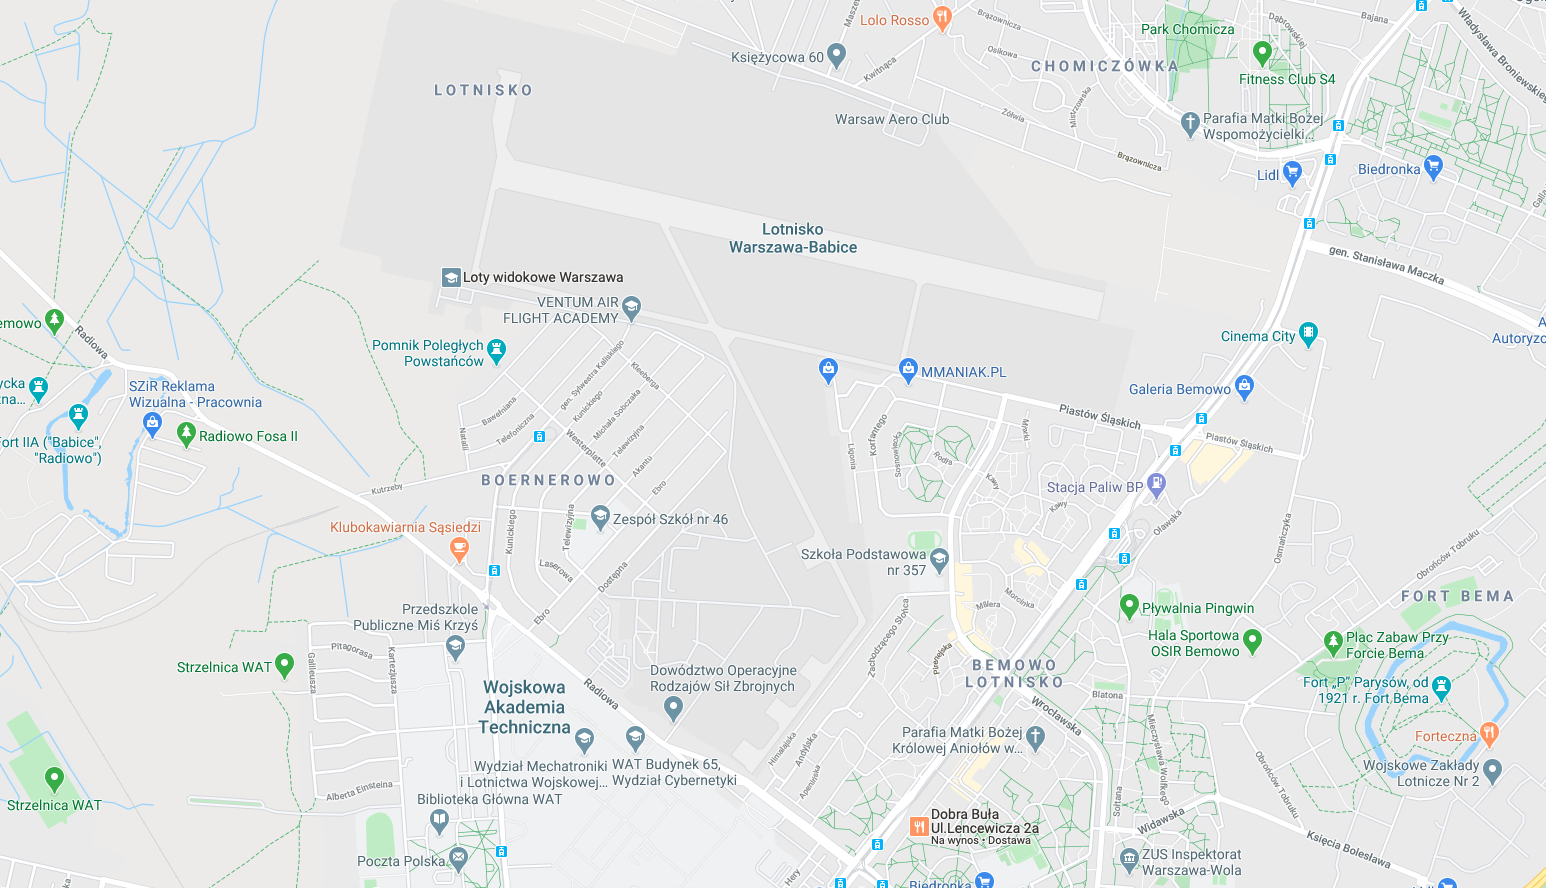 Bemowo airport on the map. 2018 year. Photo of LAC